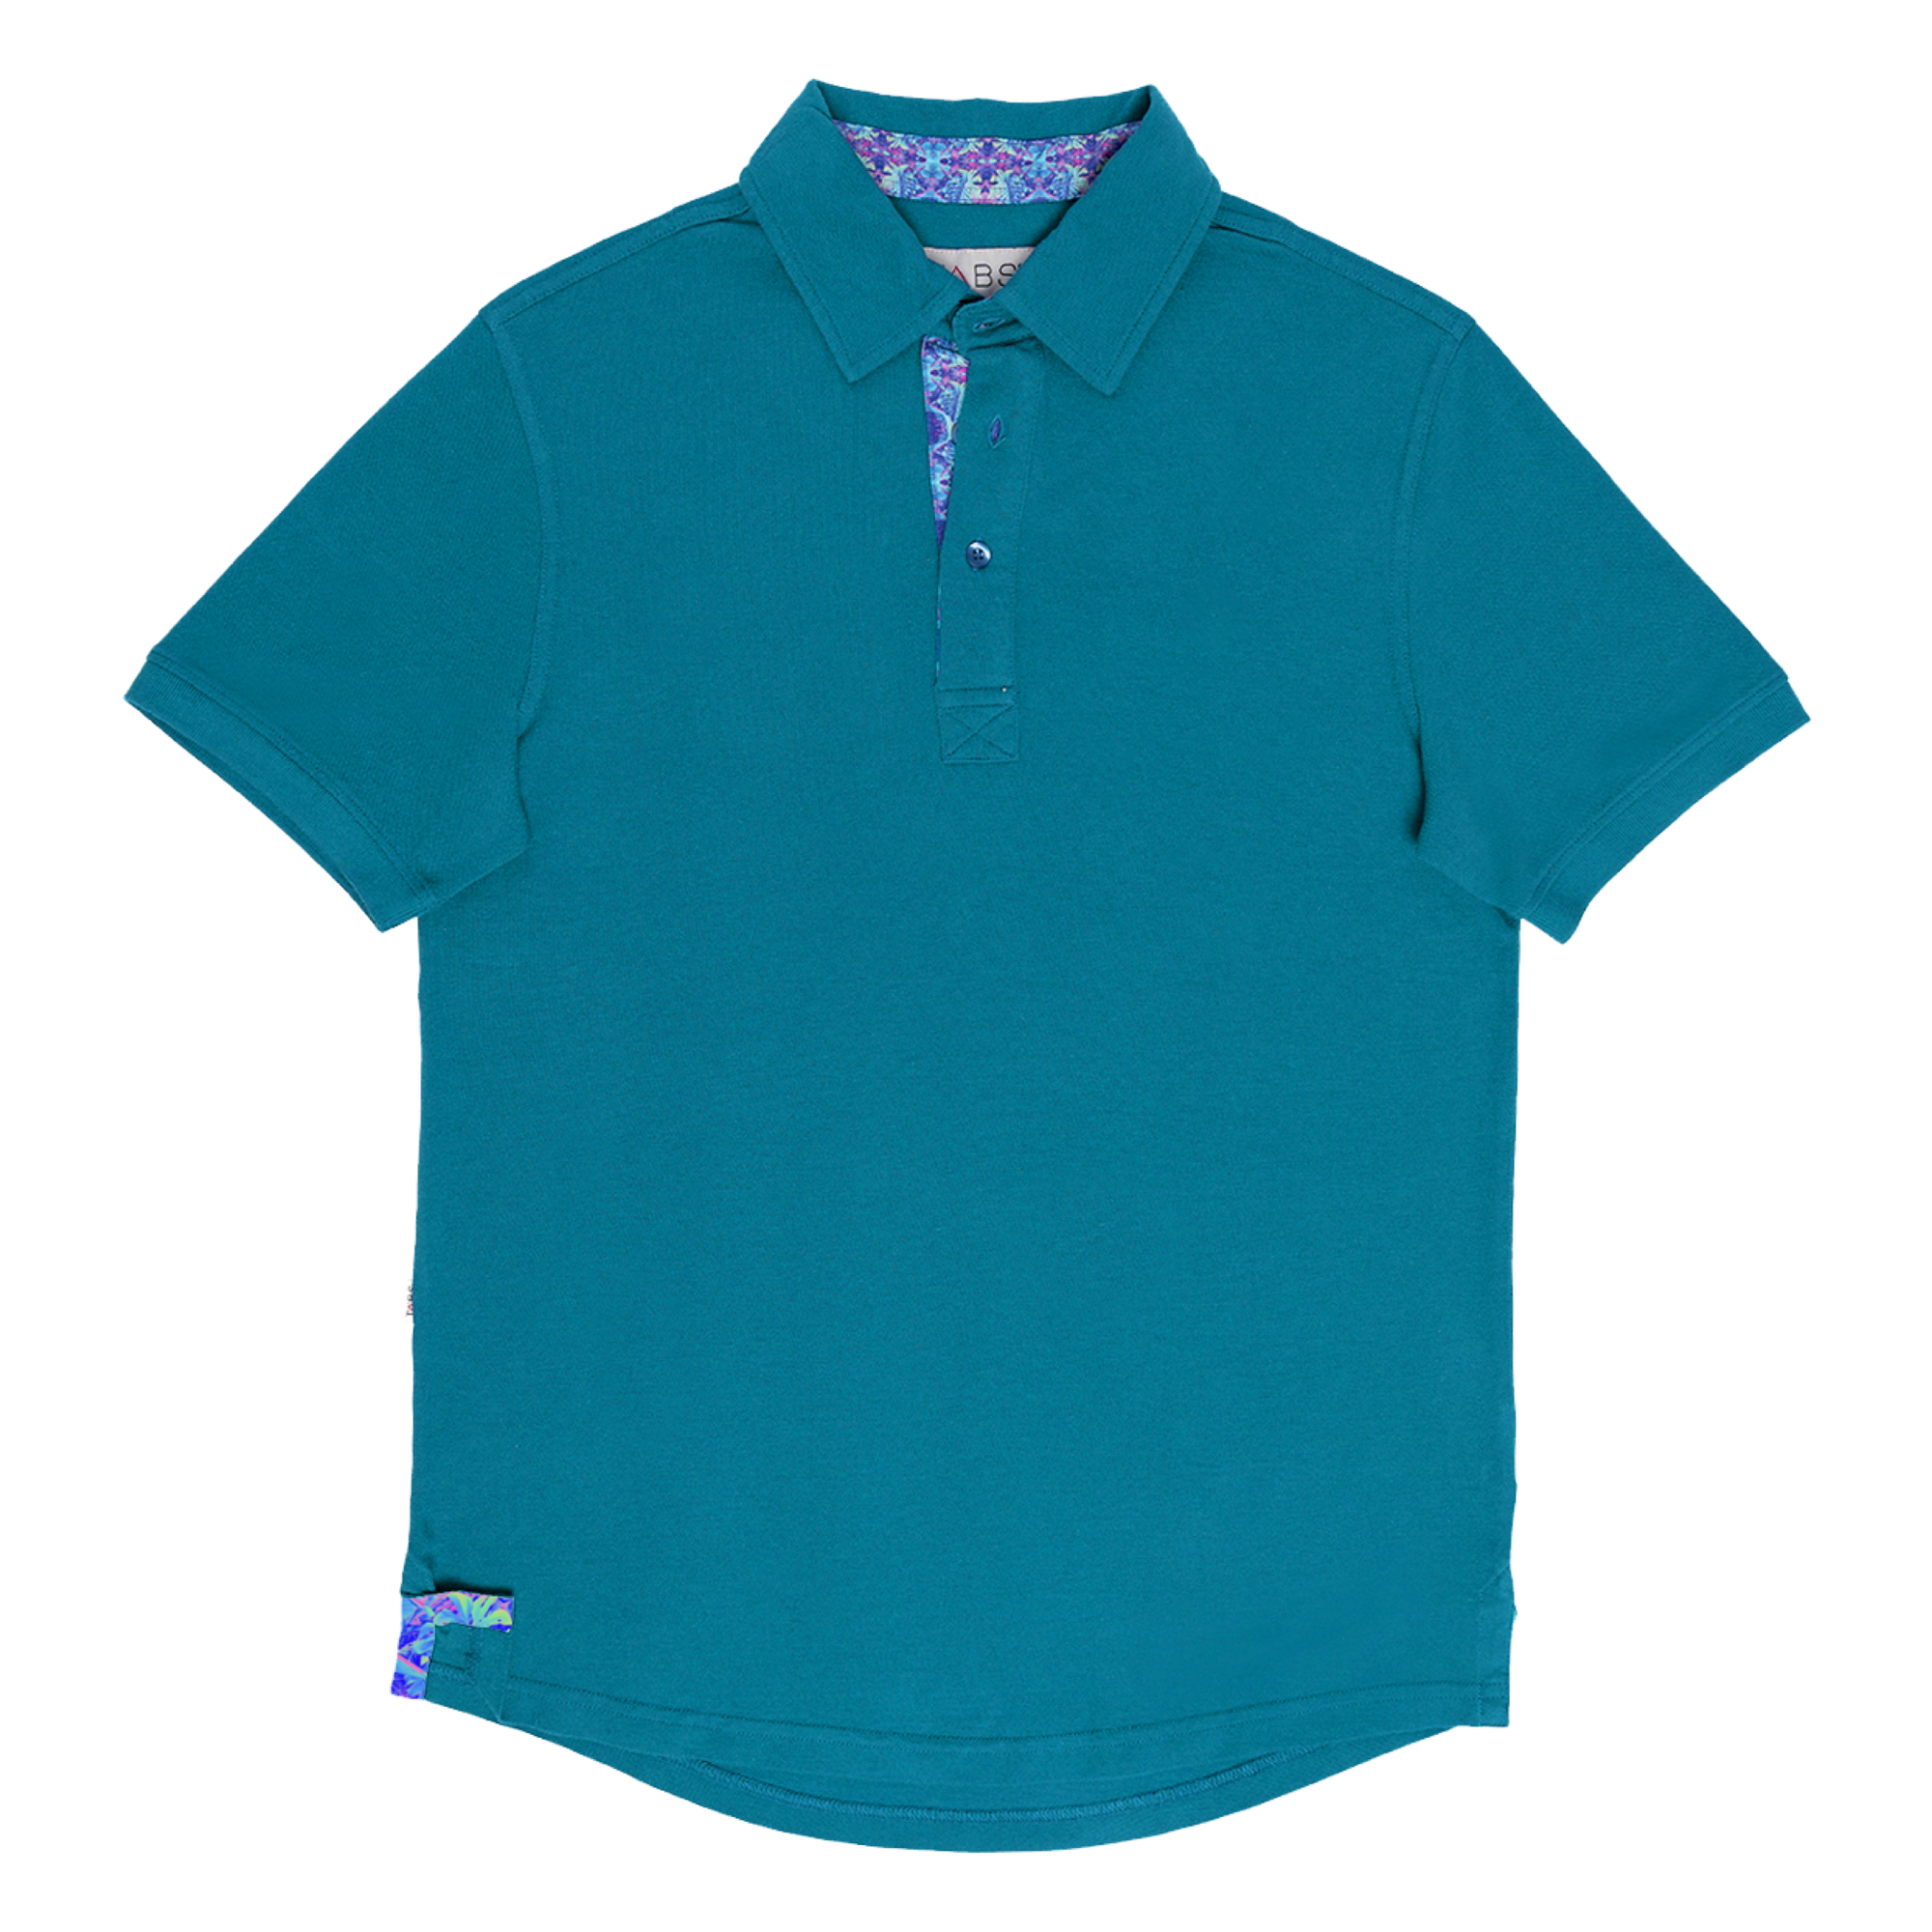 TABS mens Performance polo Belmont hazard